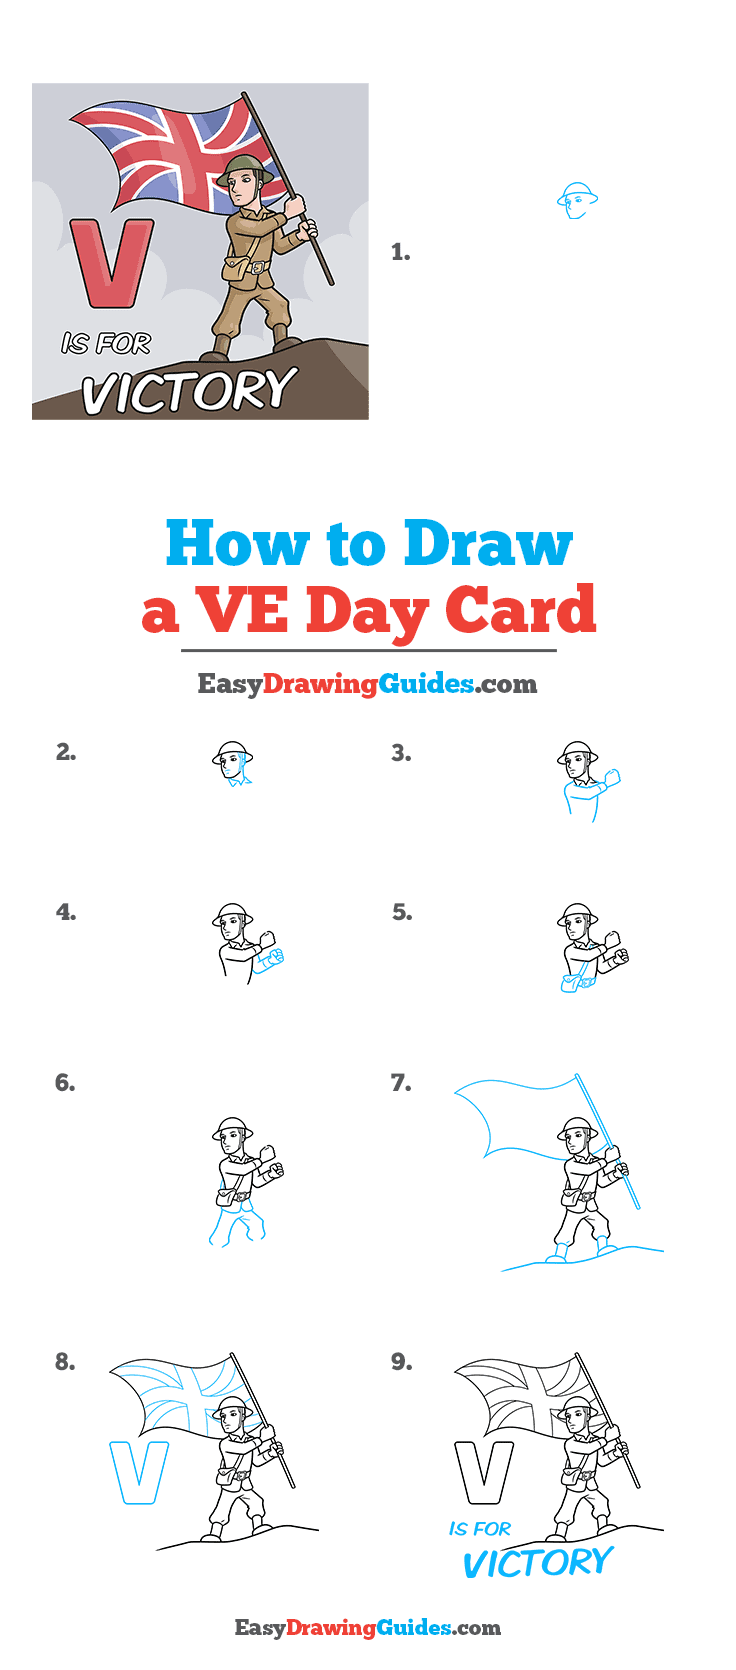 How to Draw a VE Day Card Step by Step Tutorial Image